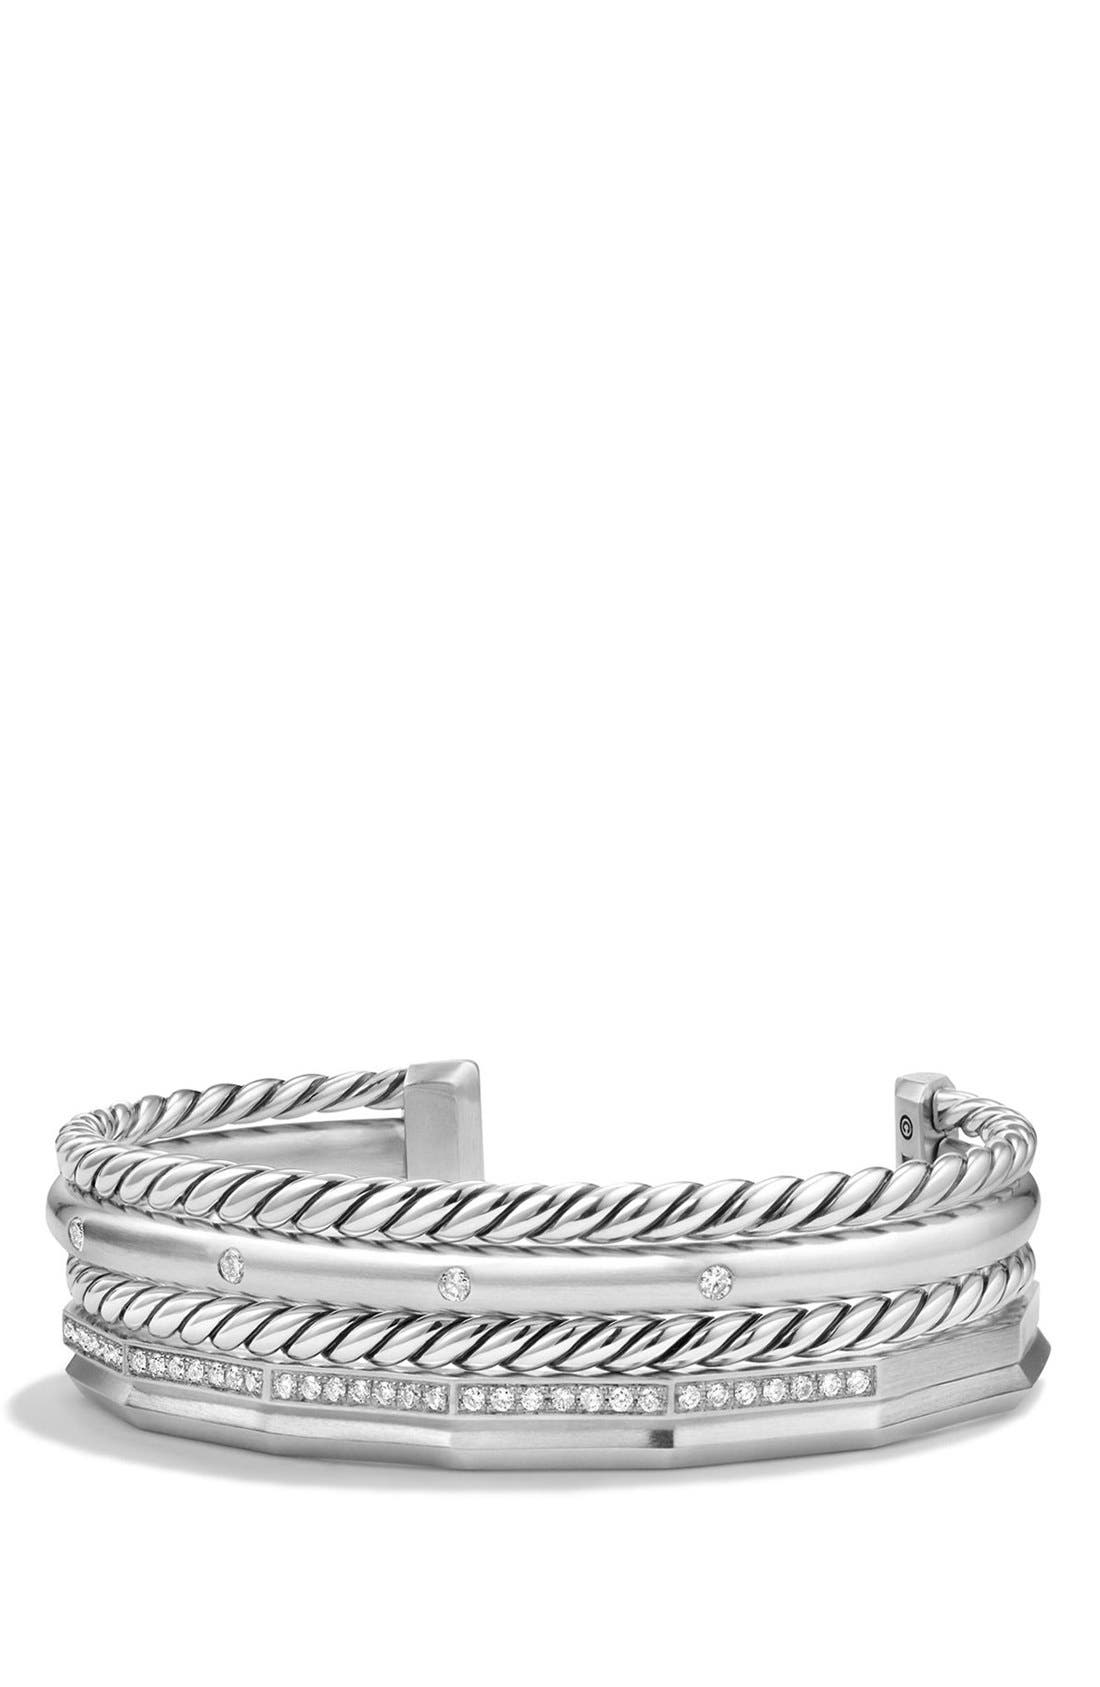 David Yurman 'Stax' Cuff Bracelet with Diamonds